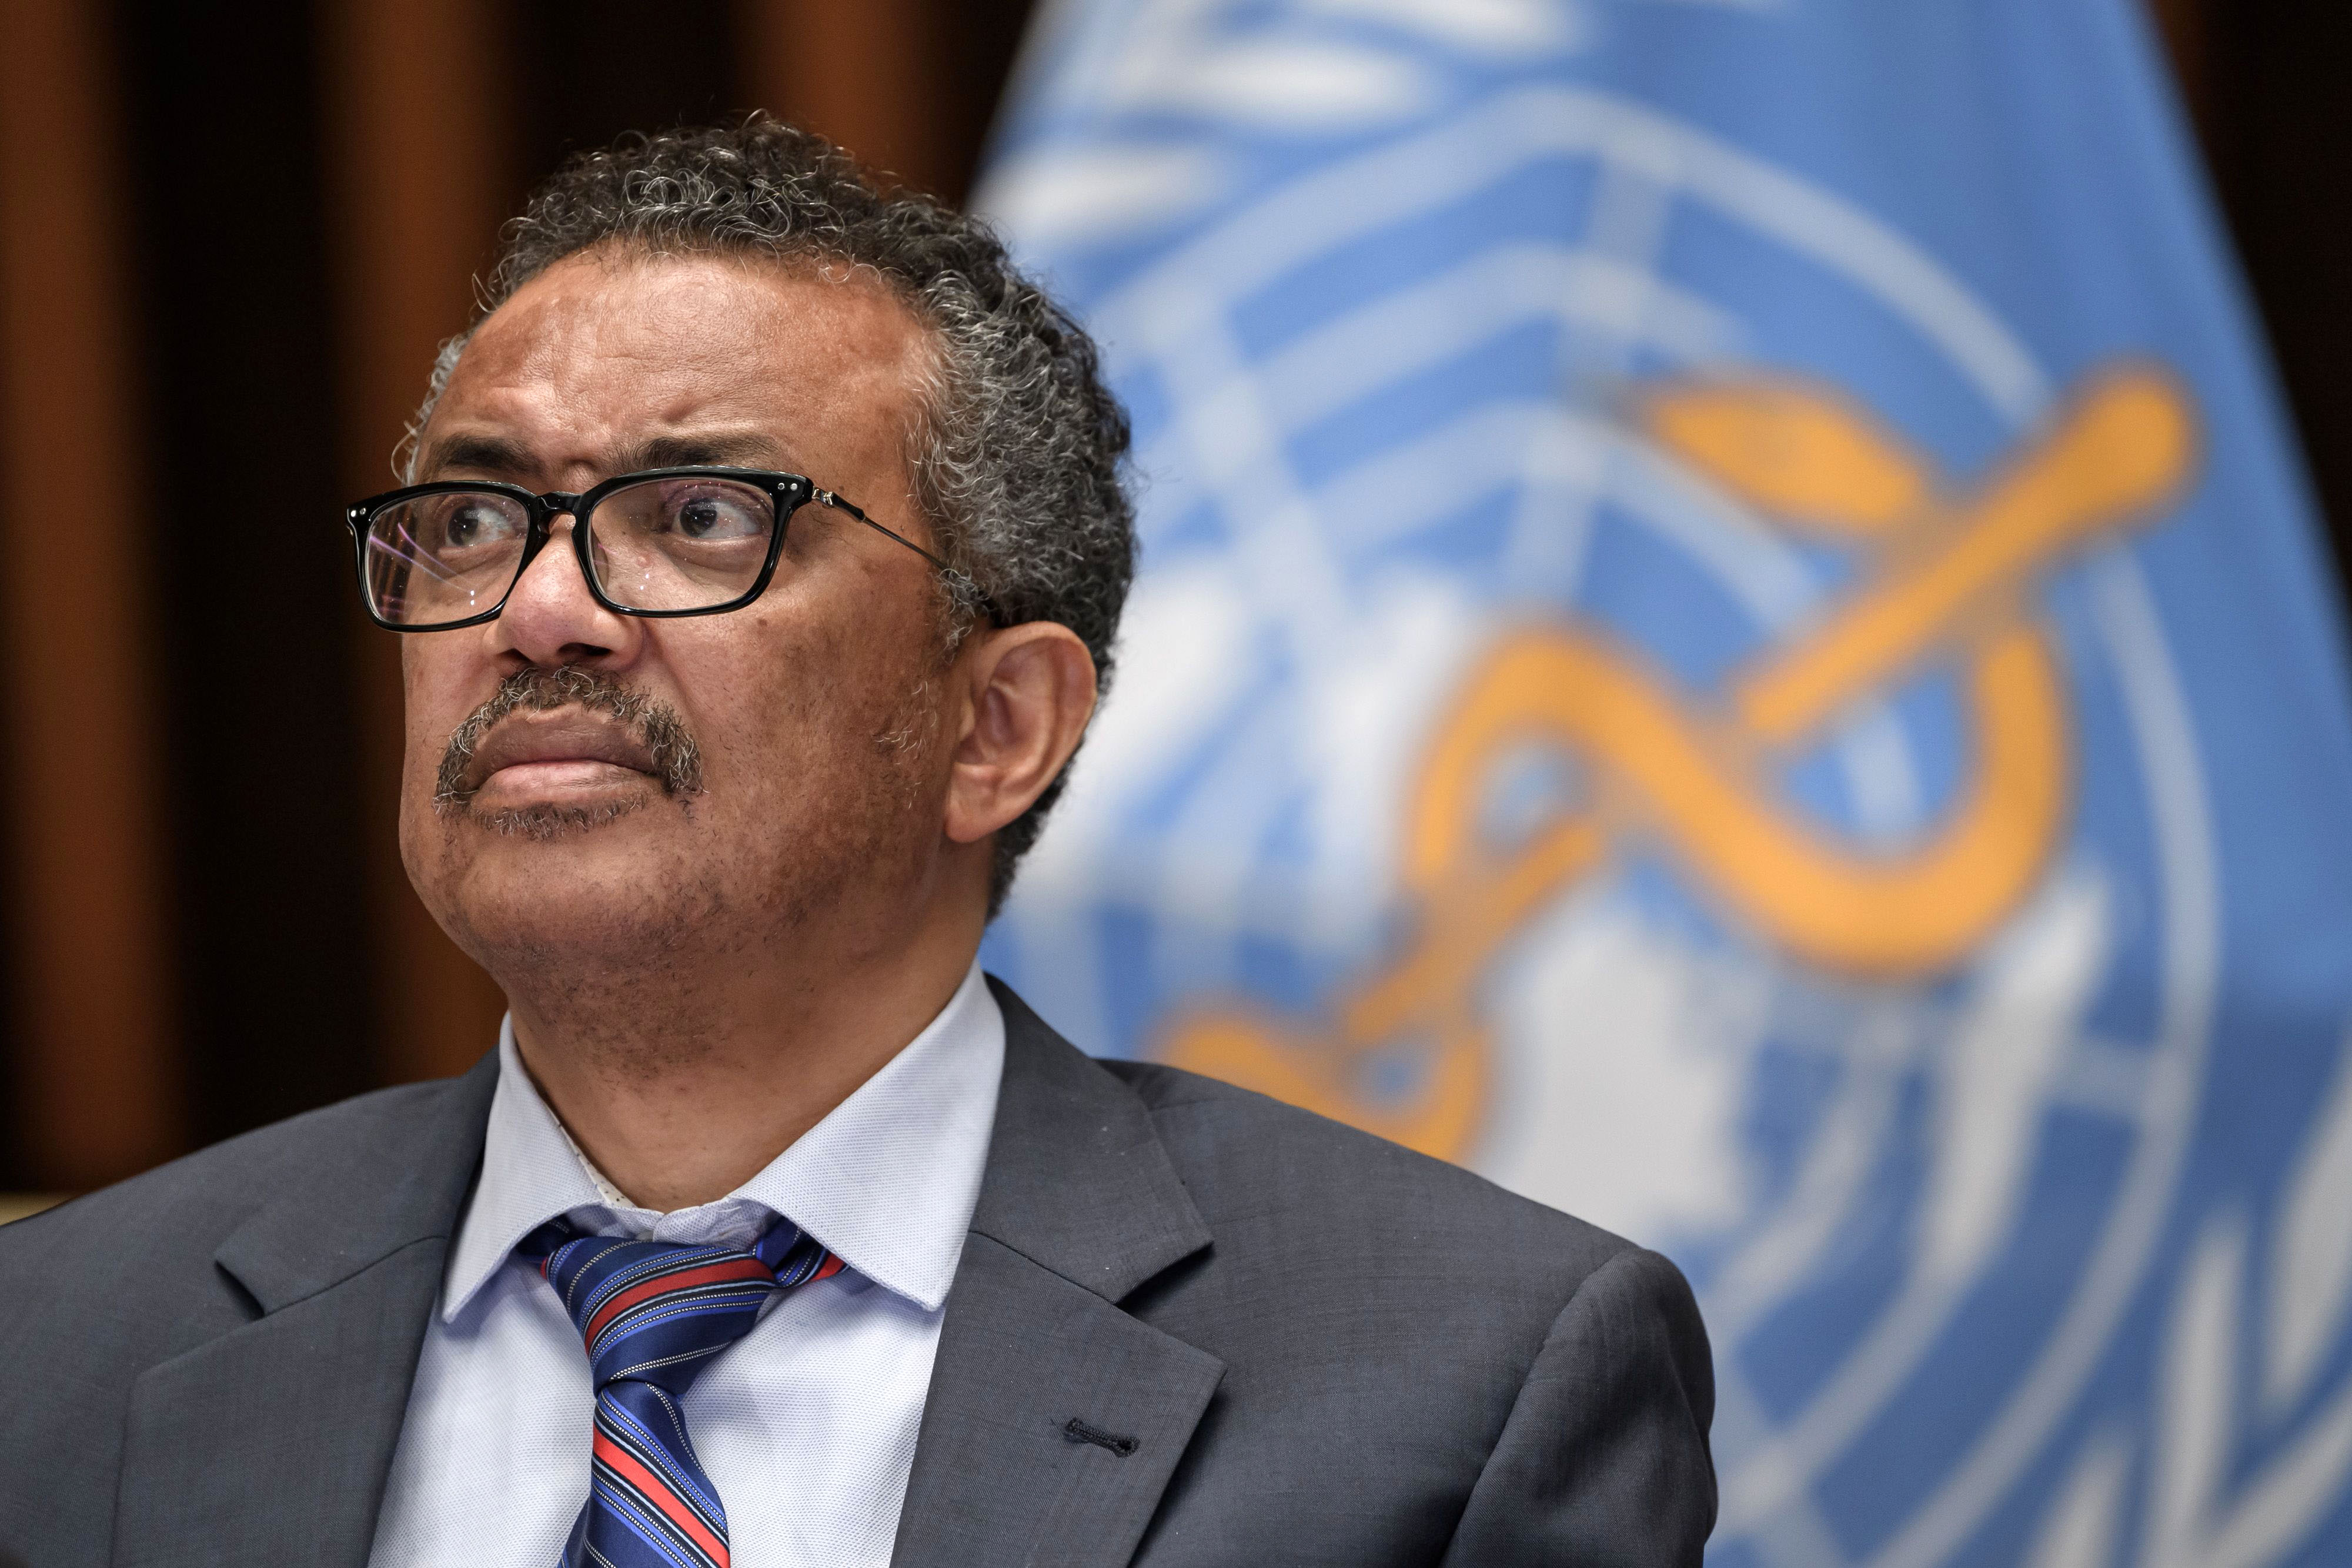 Tedros Adhanom Ghebreyesus, director-general of the World Health Organization, attends a press conference in Geneva, Switzerland, on July 3.